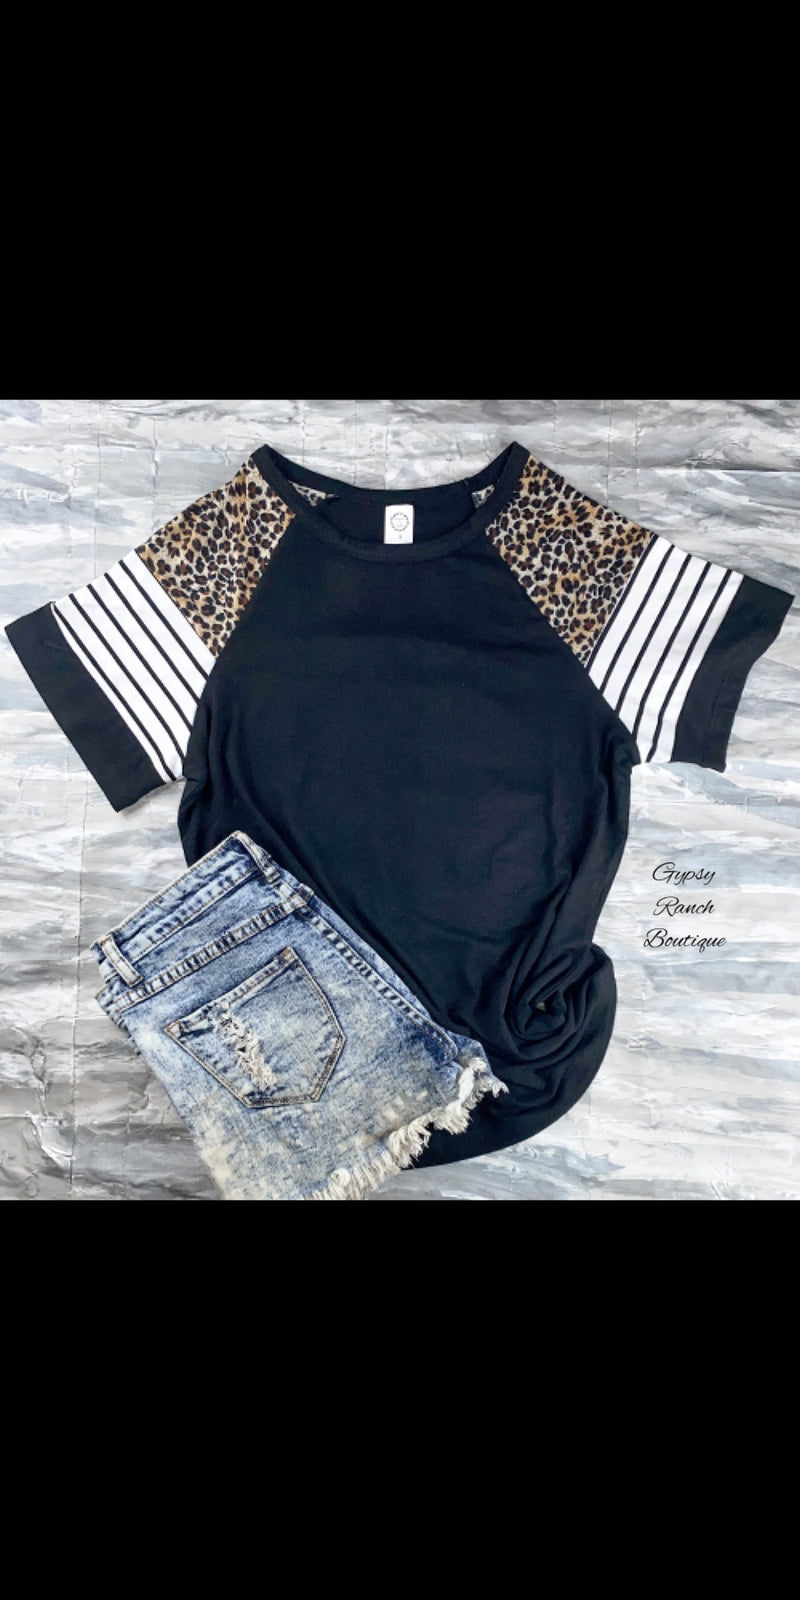 Rochester Black Leopard Stripe Top - Also in Plus Size